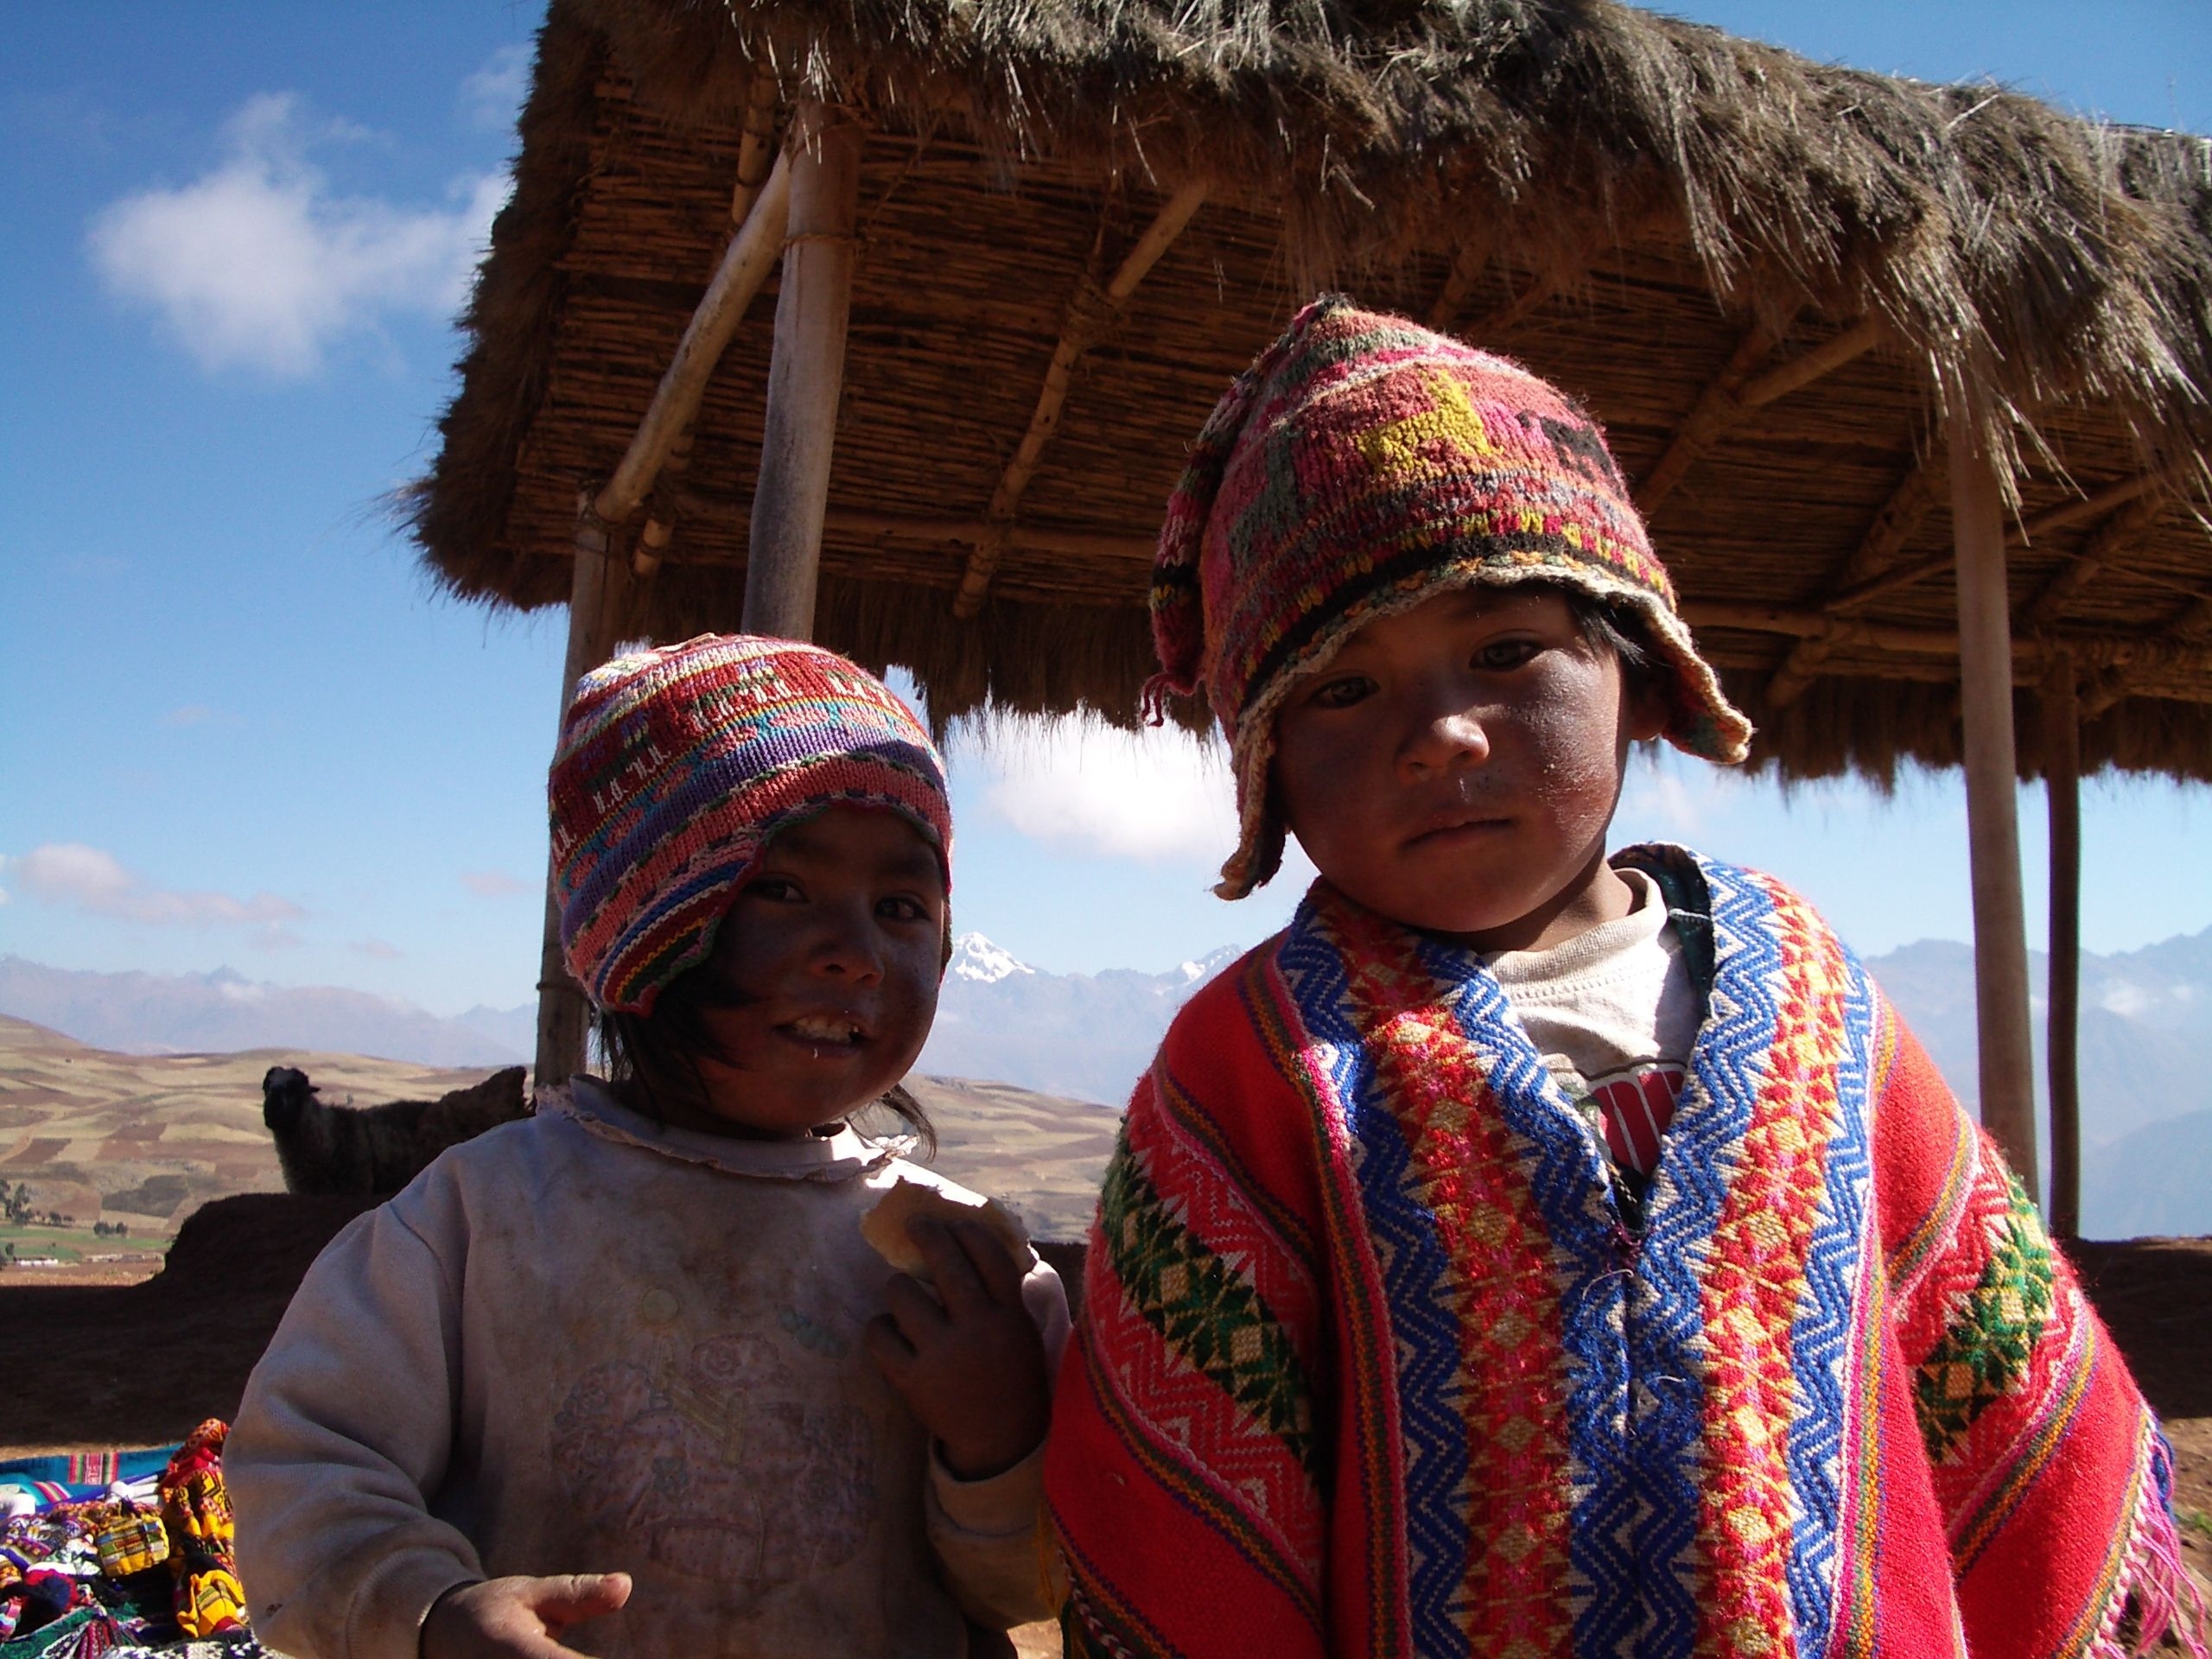 Peruvian Children accompany their mothers to the tourist trap craft fairs. Peru...on the way to Machu Picchu